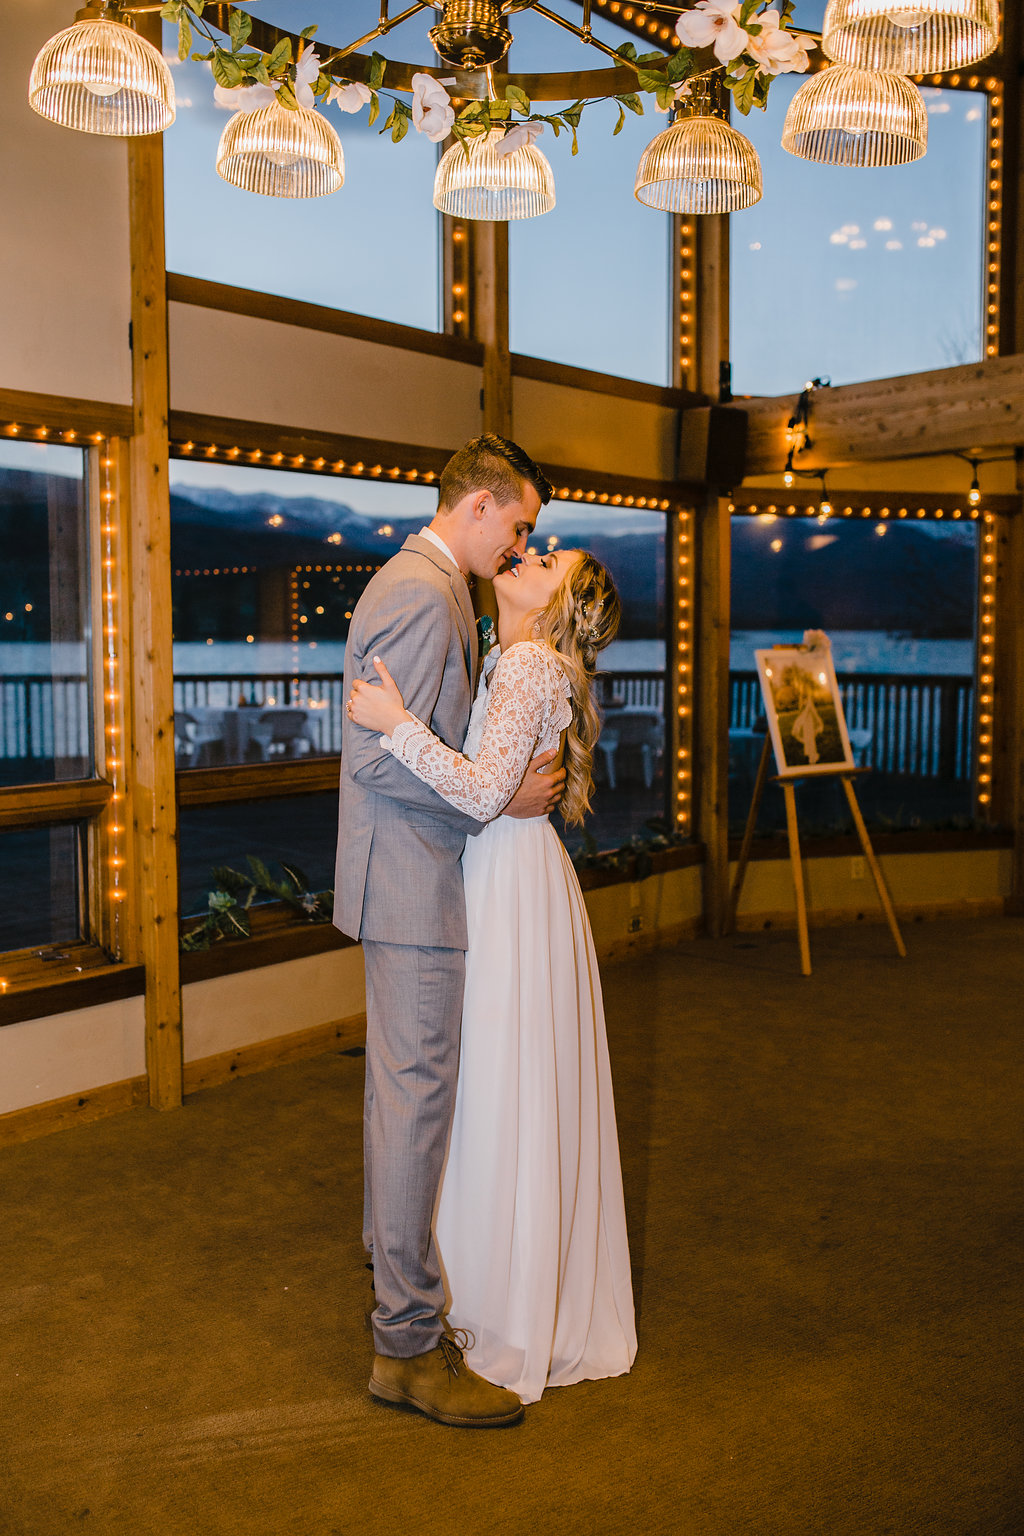 northern utah wedding photographer park city midway bride and groom first dance at the reception